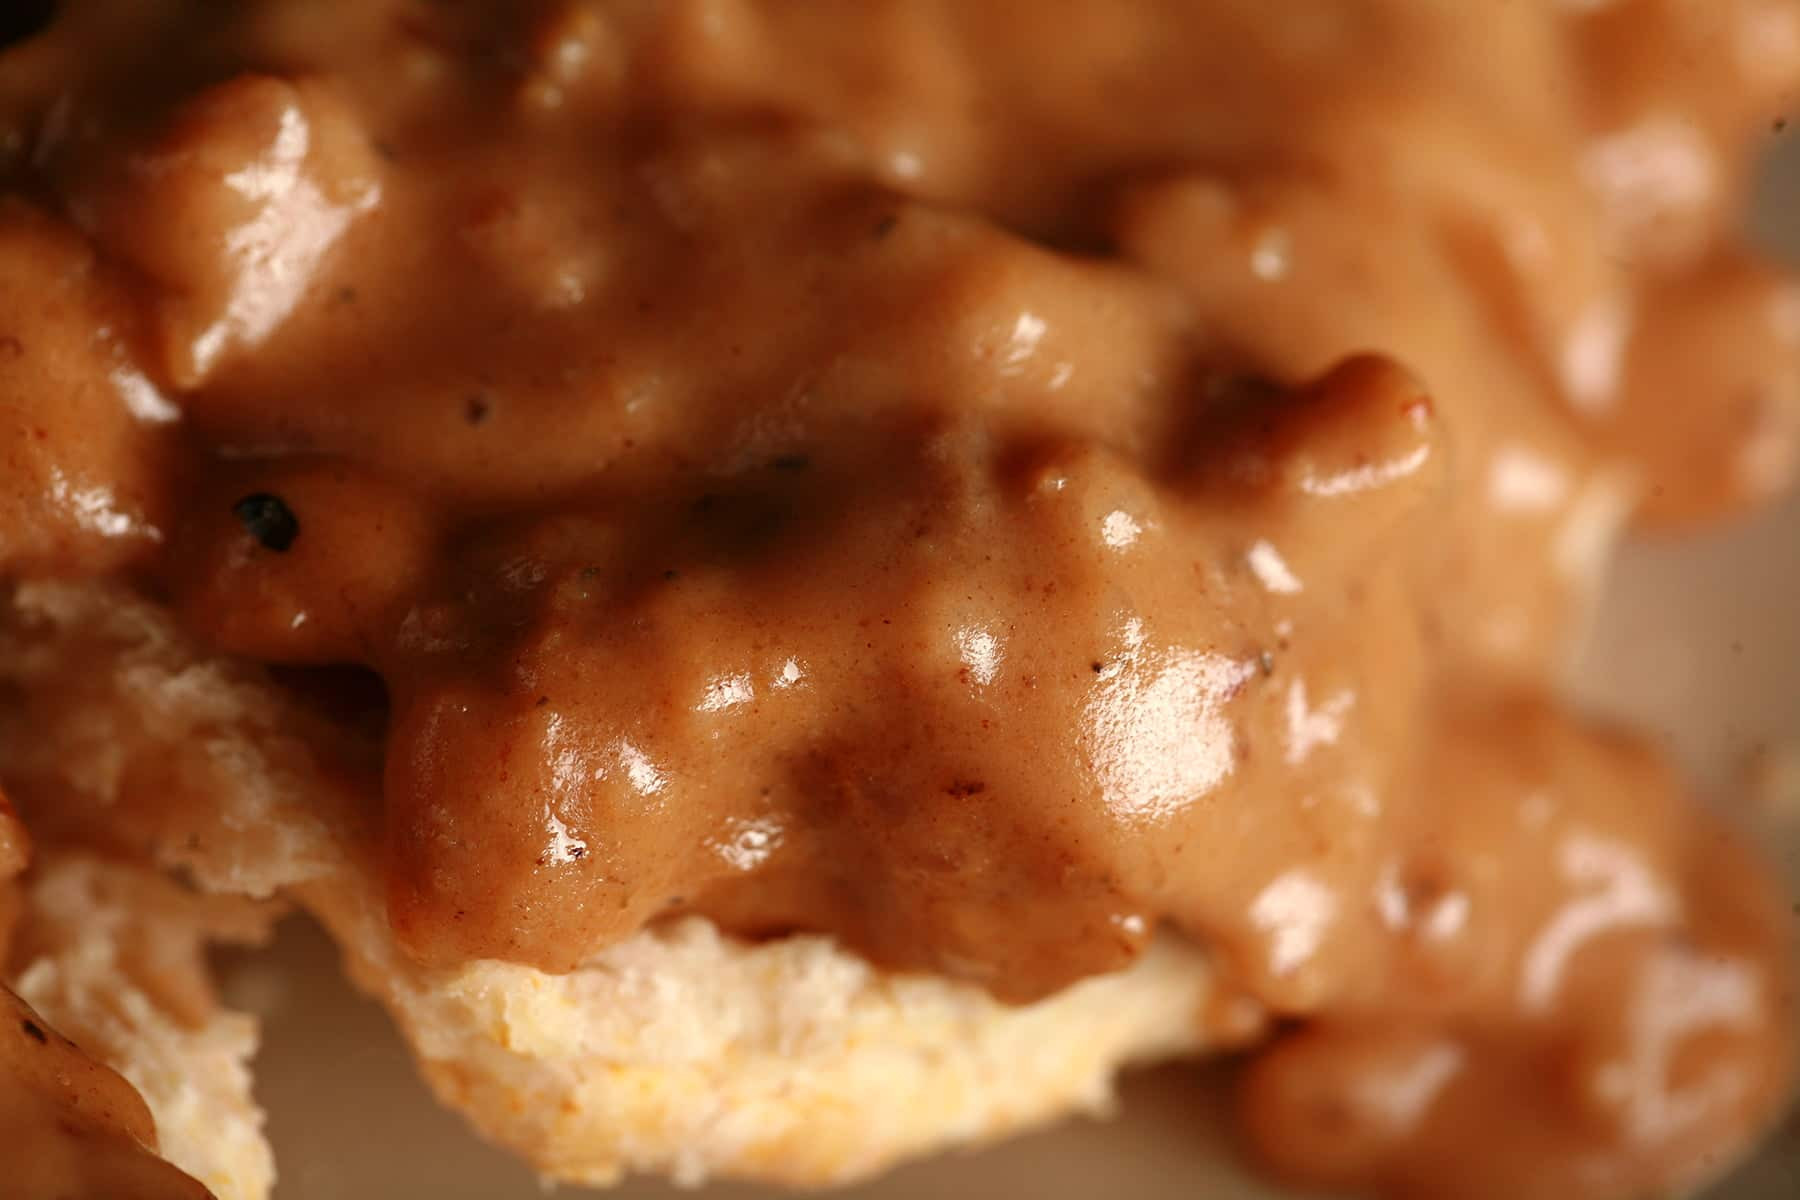 A close up view of a split biscuit covered with sausage gravy - Biscuits and Gravy, My Way!